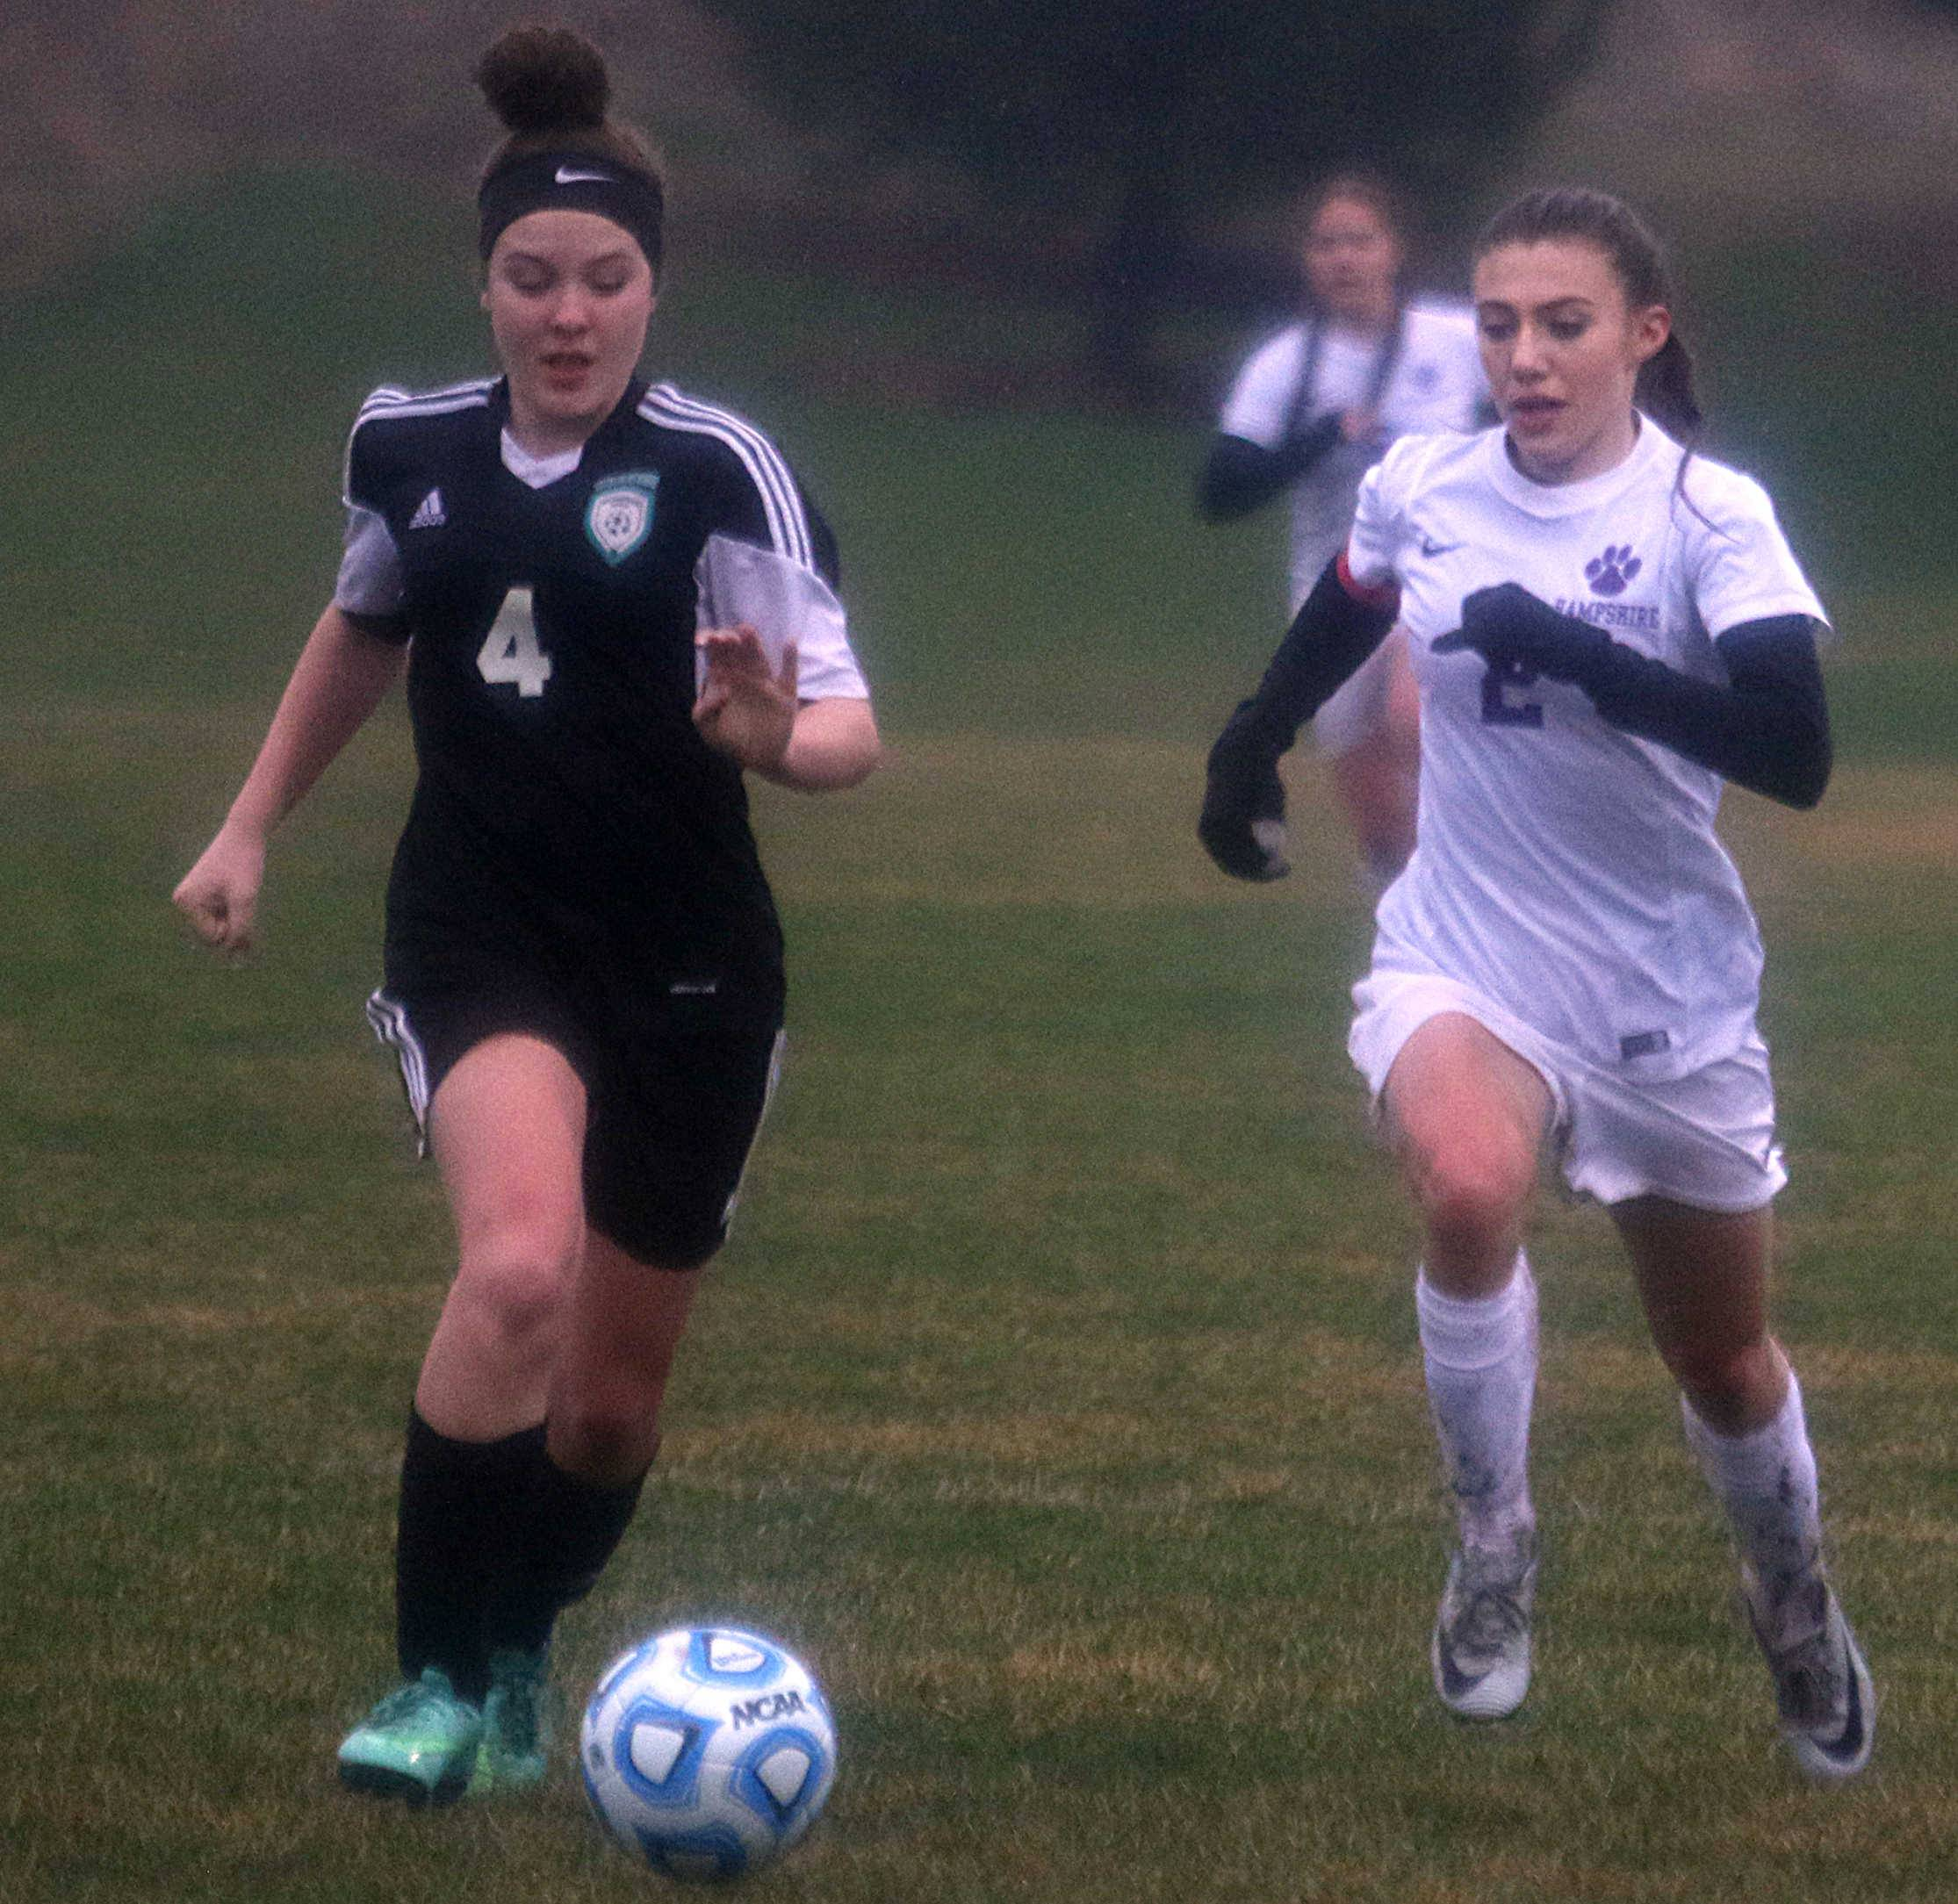 Hampshire's Morgan Heileman, right, races Woodstock North's Abigail Svitak for the ball during varsity girls soccer action at Hampshire Monday night.